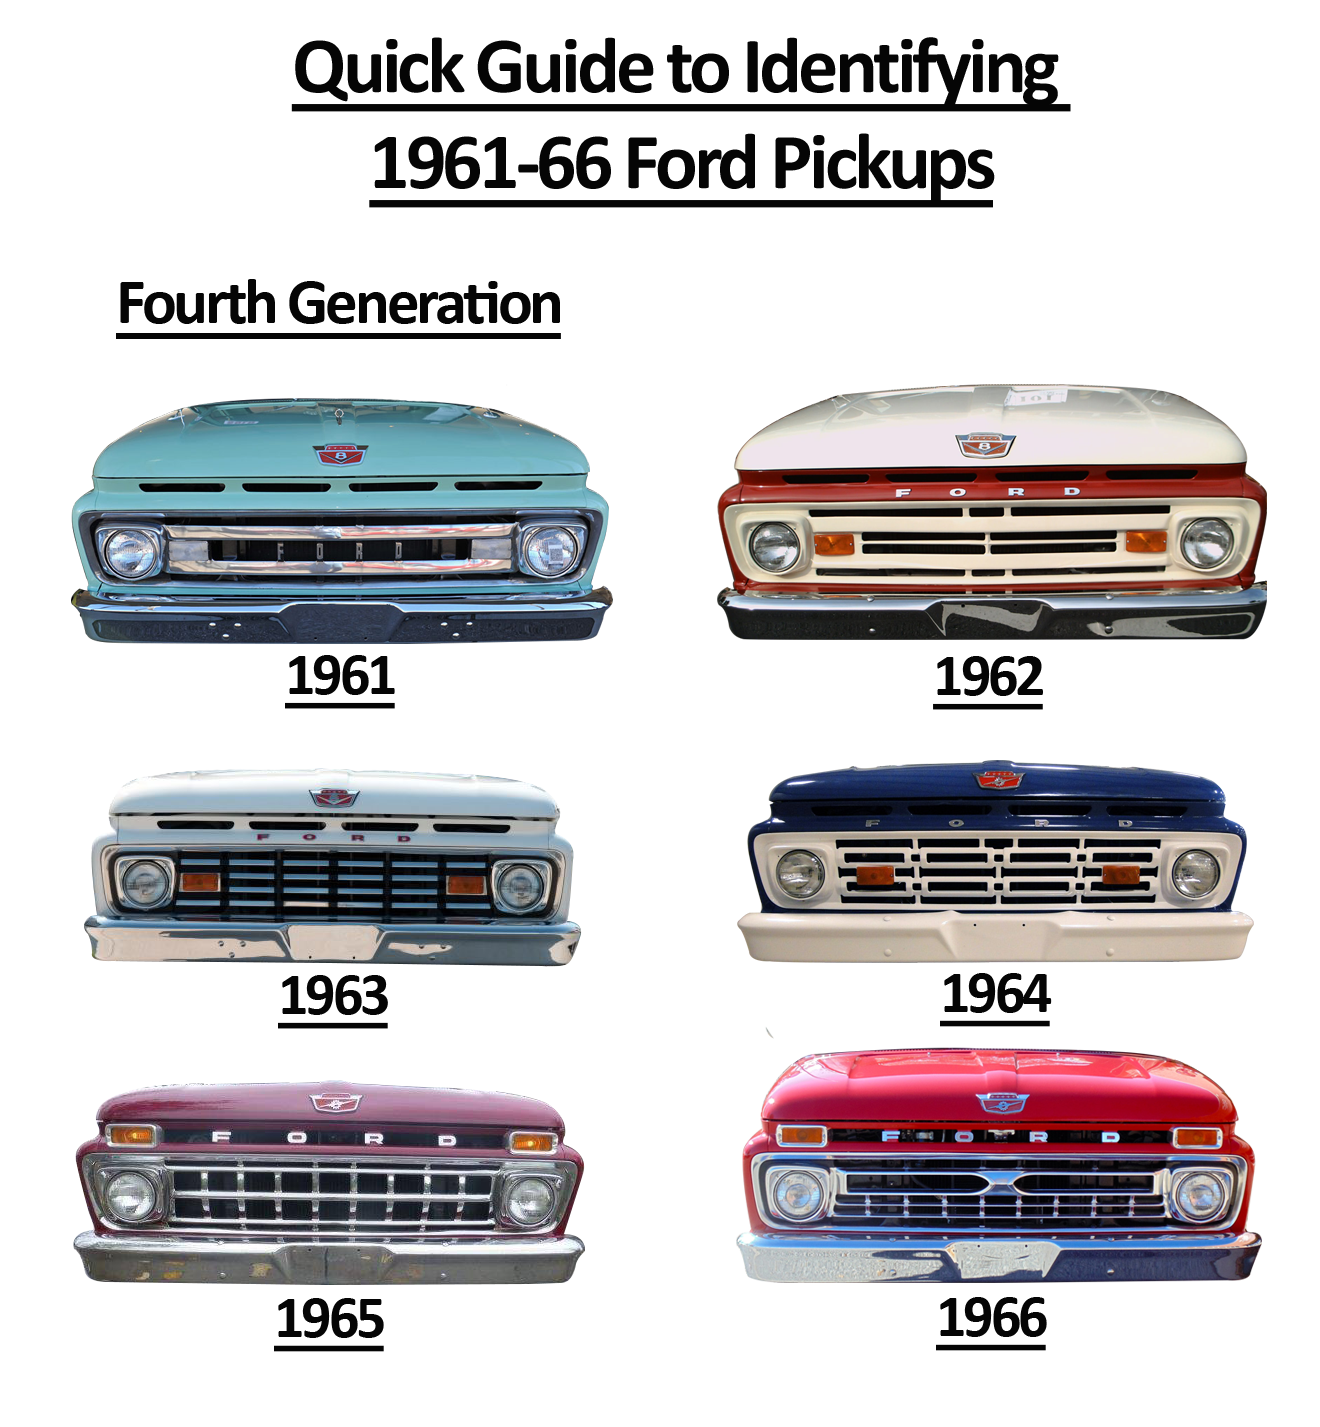 Ford Engines For Sale >> Ride Guides: A Quick Guide to Identifying 1961-66 Ford Pickups - OnAllCylinders